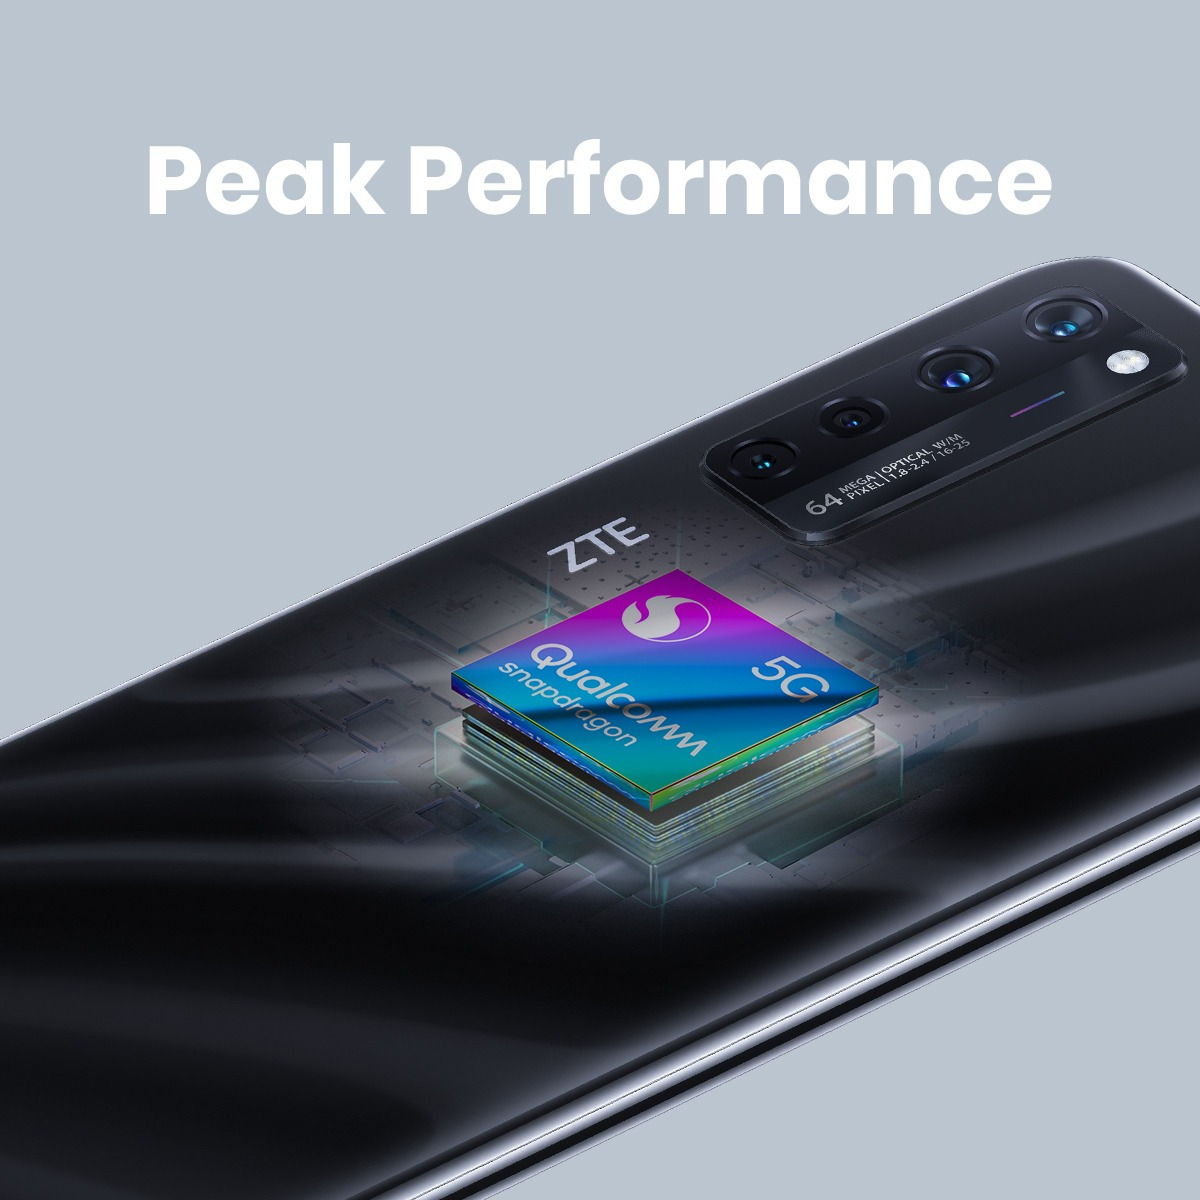 No need to deal with clunky and unreliable user experience. Enjoy strong performance, energy efficiency and fast & smooth experience thanks to Snapdragon 765G: https://t.co/VHtfjhCahF https://t.co/ME1eRlzqis